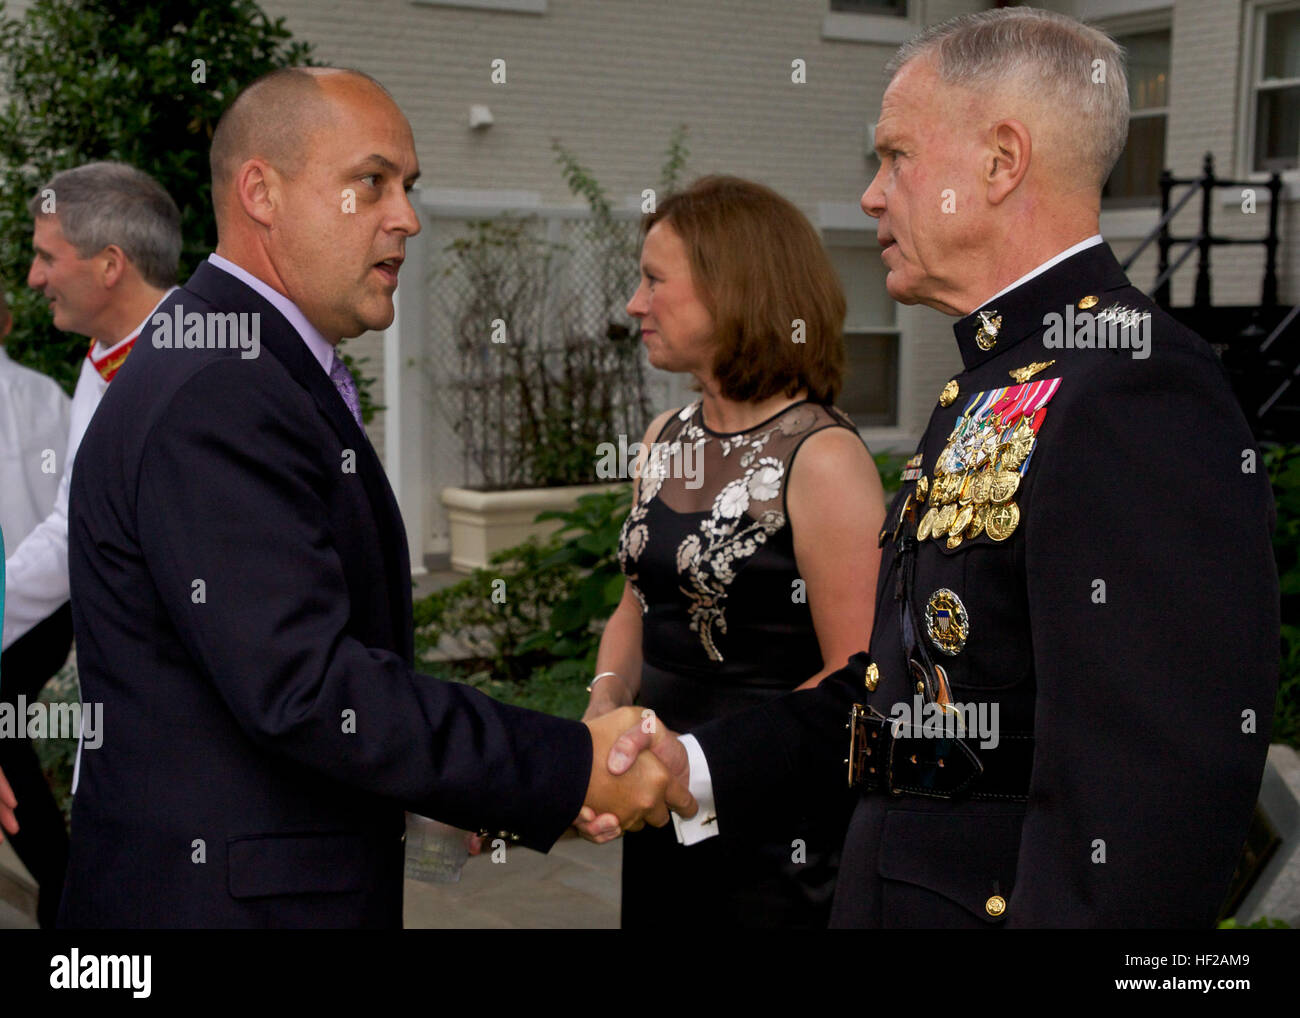 The Commandant of the U.S. Marine Corps, Gen. James F. Amos, right, greets with a guest during an Evening Parade Stock Photo